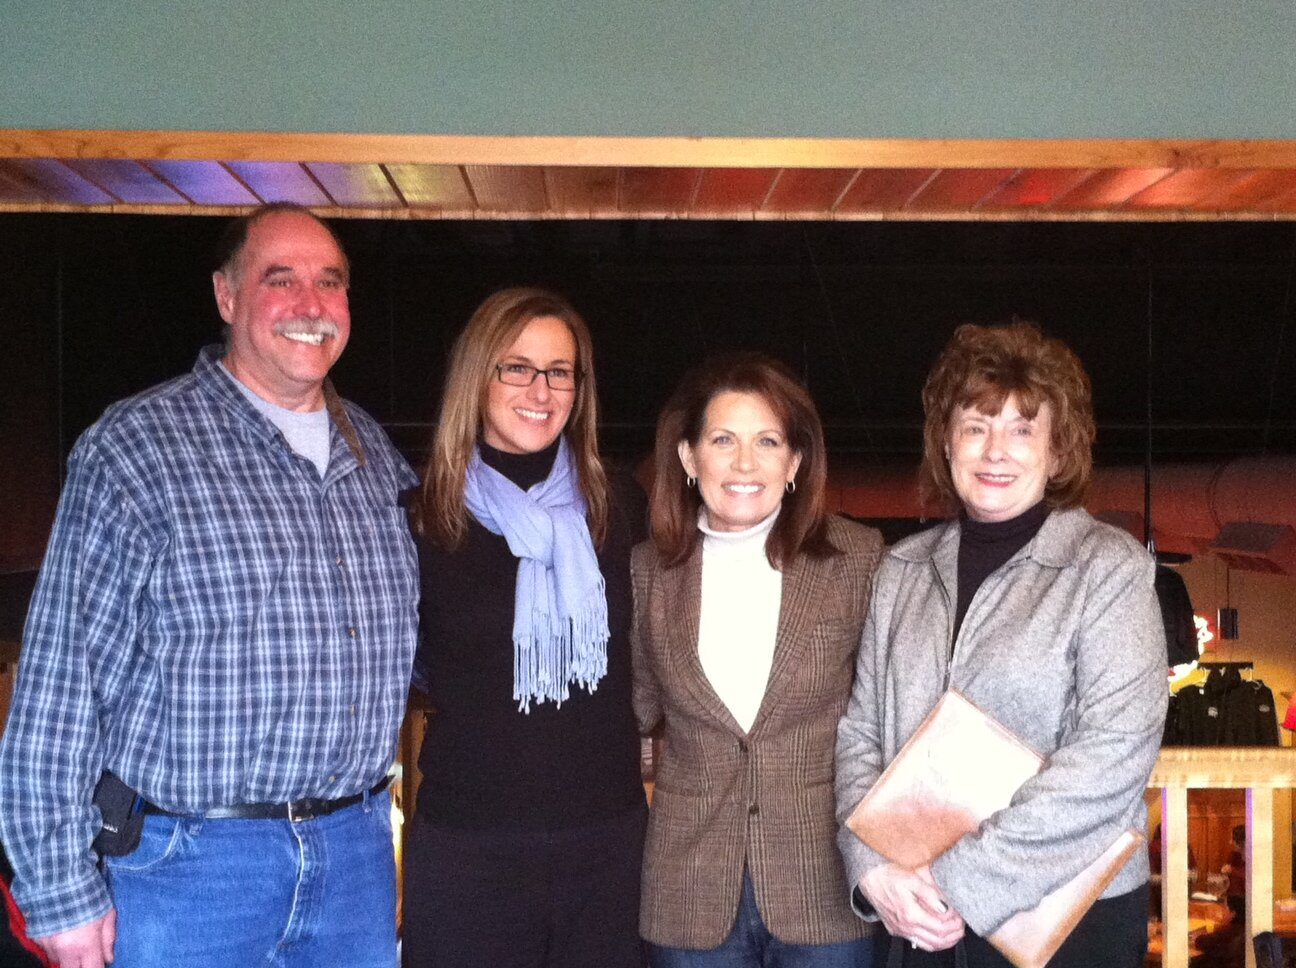 Michele Bachmann's Twitter Photo